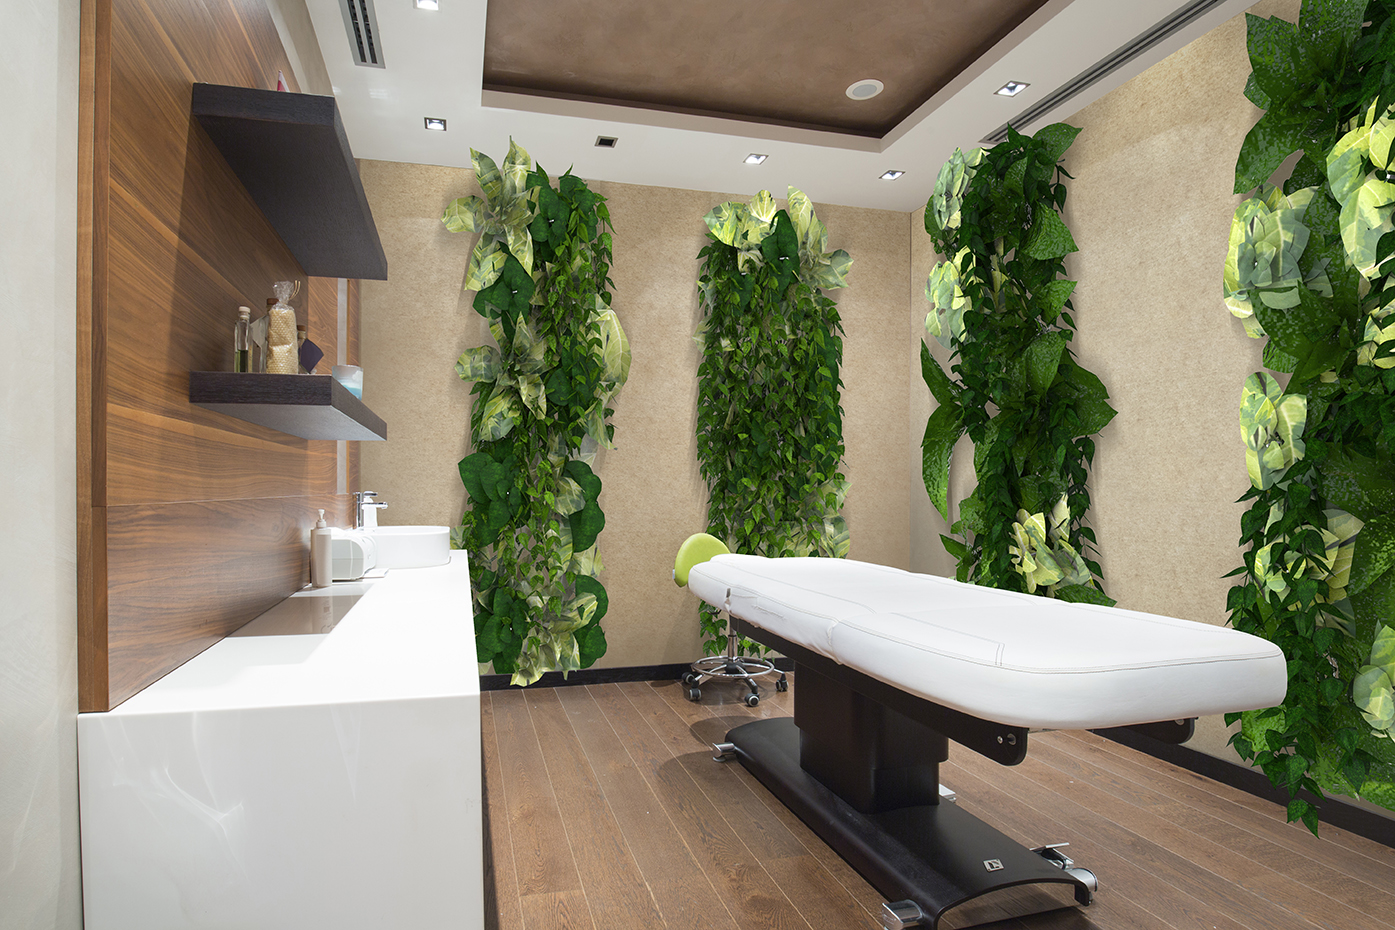 Surface Greenery Hospitality Massage